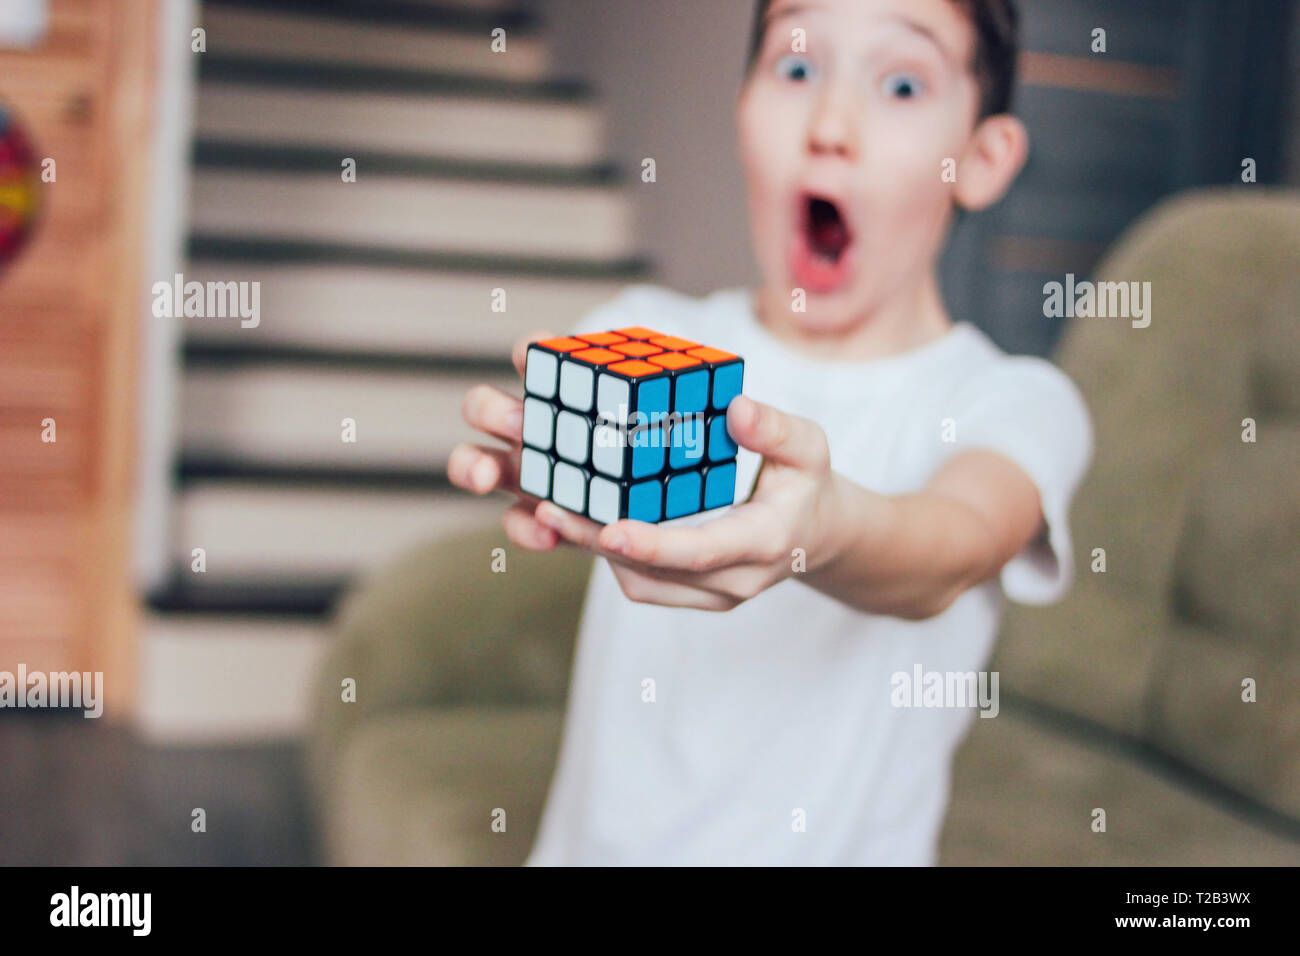 Yekaterinburg, Russia - March, 01, 2019. The boy is surprised and glad that he has completely collected Rubik's cube - Stock Image